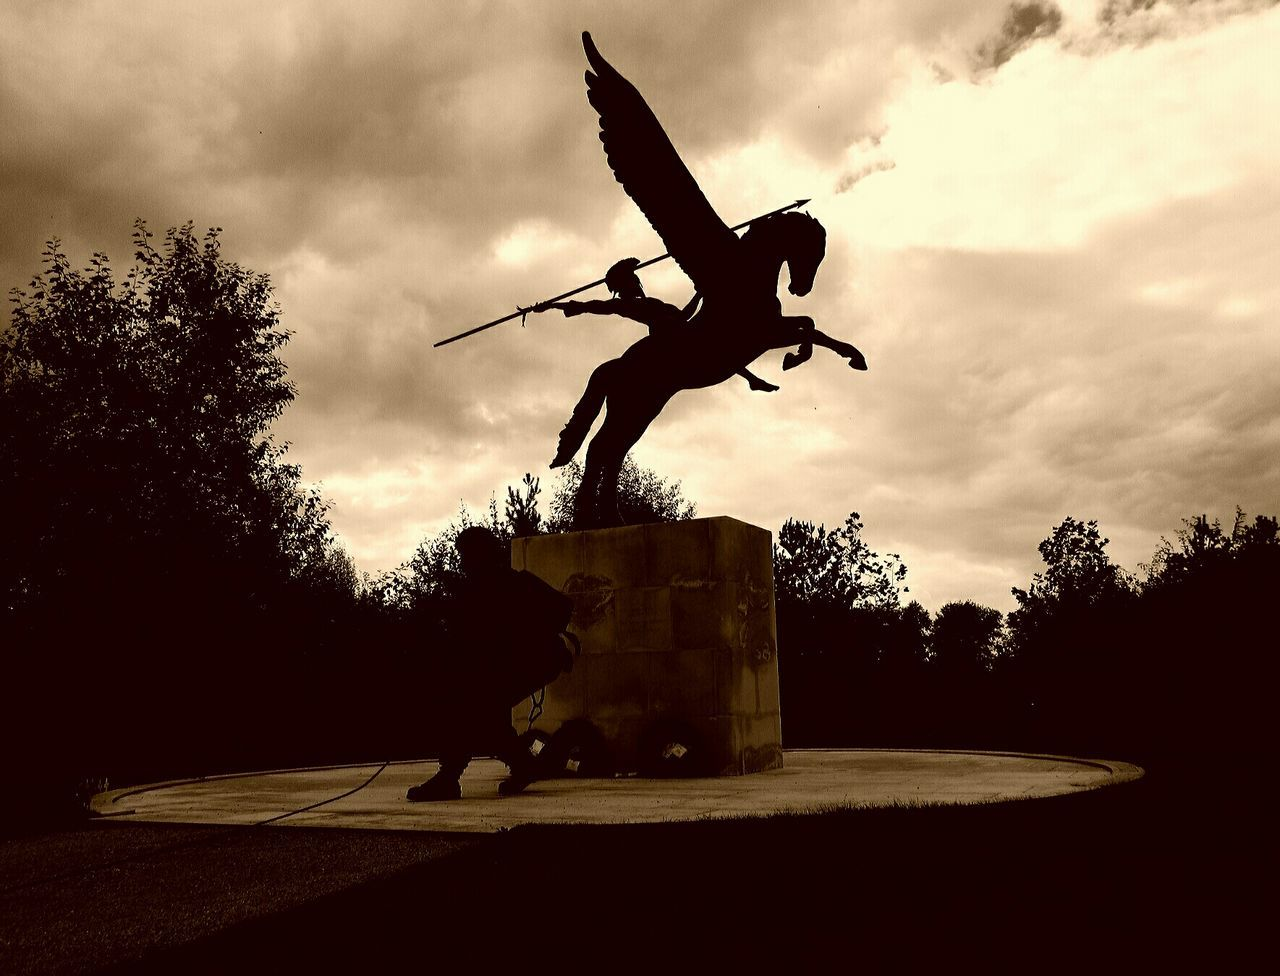 Memorial Sculpture Outdoors War Ww2 Ww1 History September2016 Love To Take Photos ❤ Check This Out Eyemphotography EyeEm Best Shots History Lover Not To Forget Proud